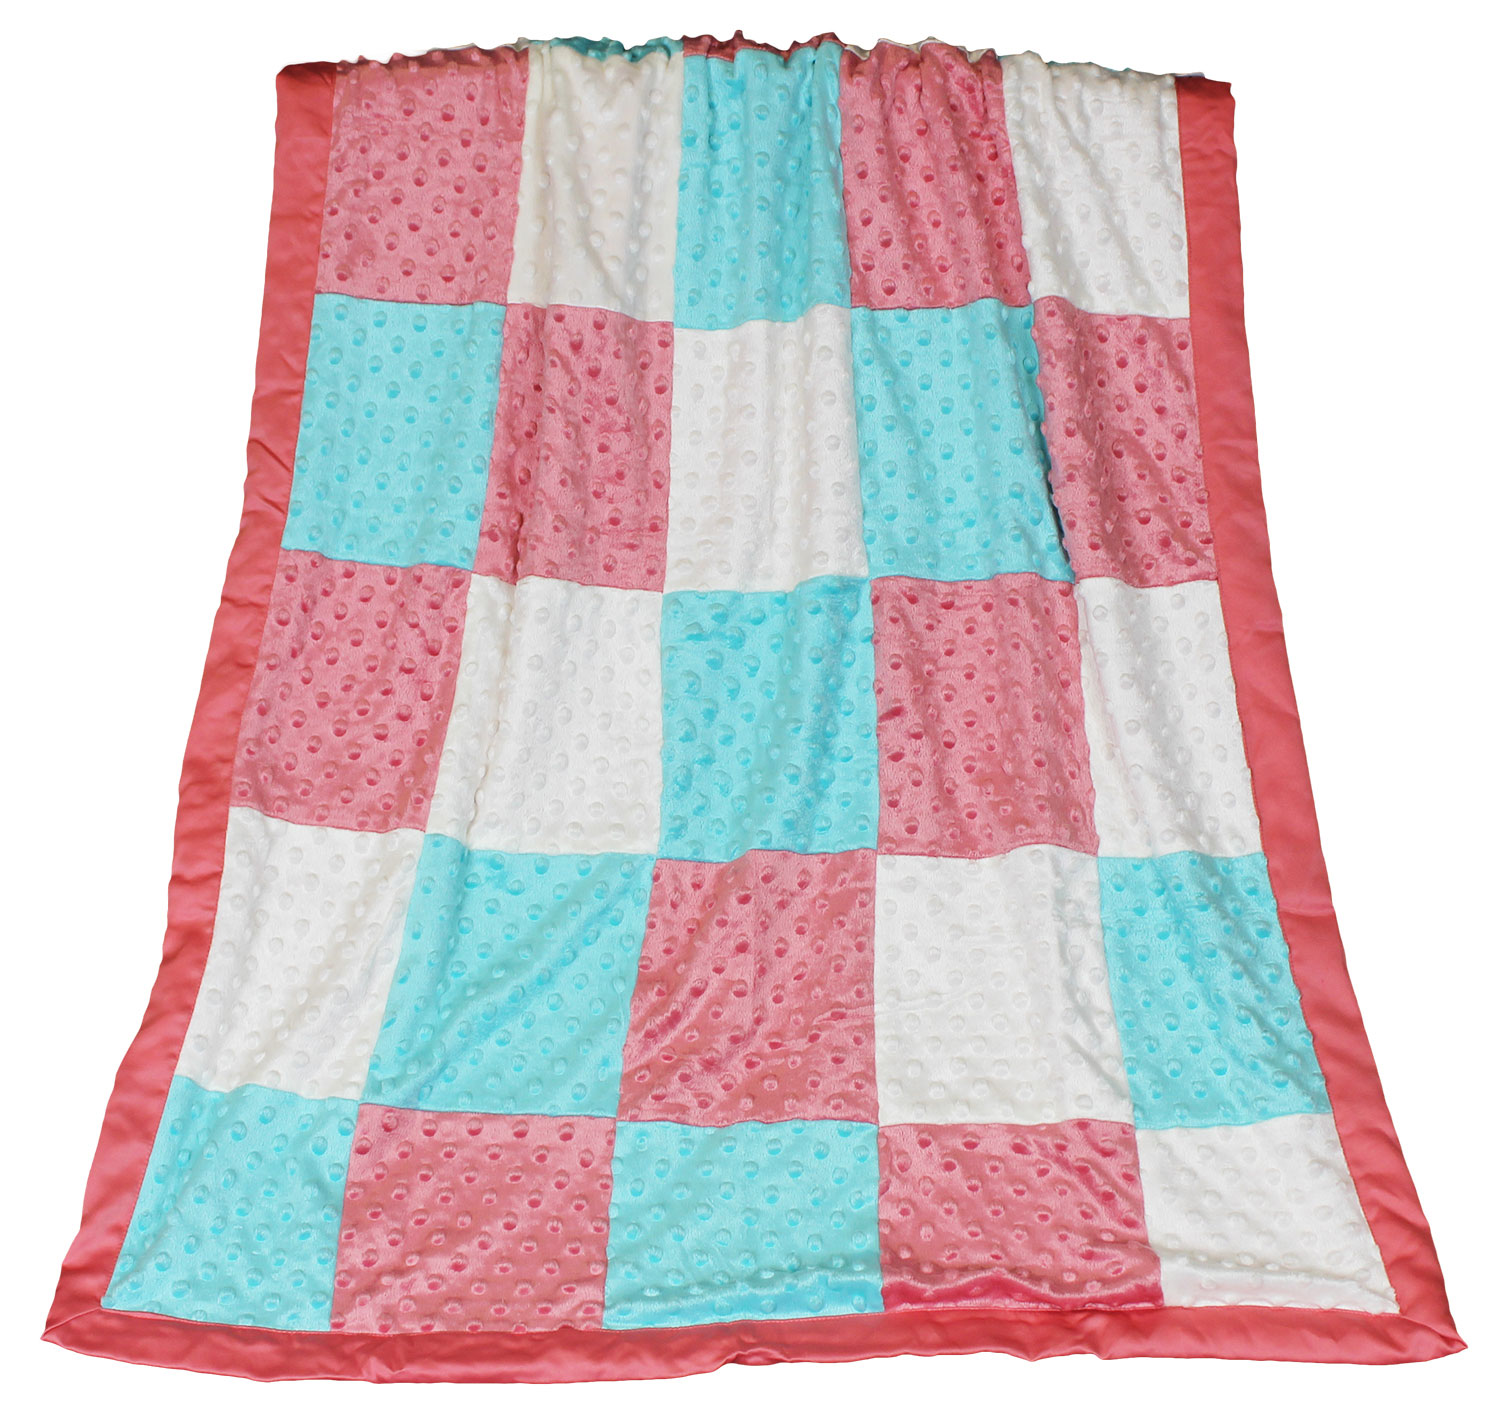 Gia Coral Minky Dot Patchwork Baby Blanket by The Peanut Shell